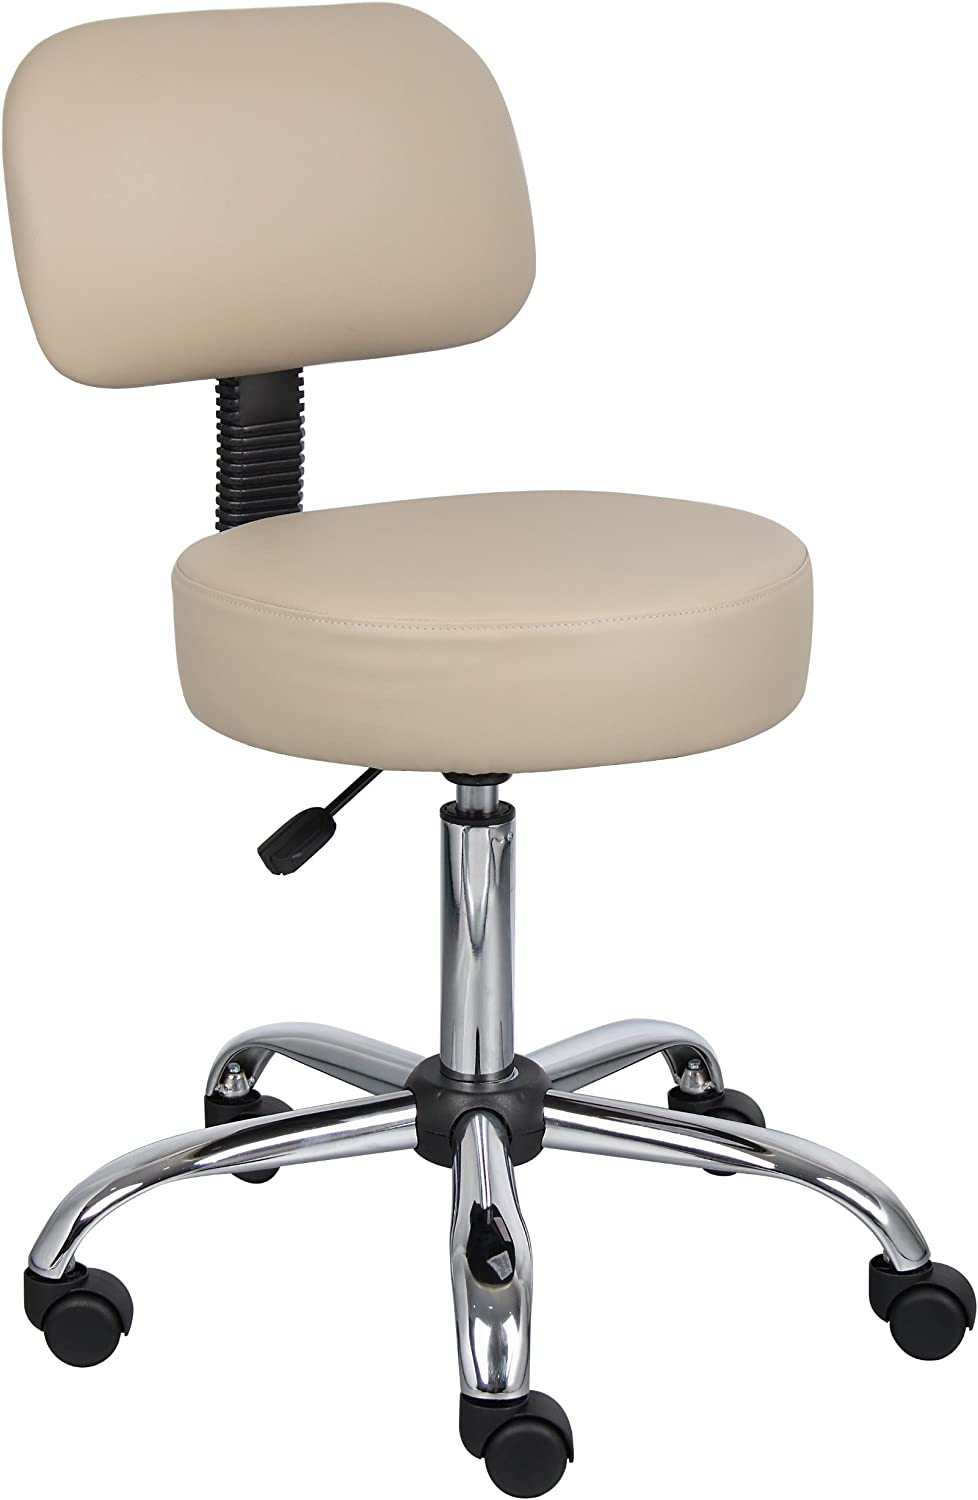 Boss Office Products B245-BG Be Well Medical Spa Stool with Back in Beige Renewed